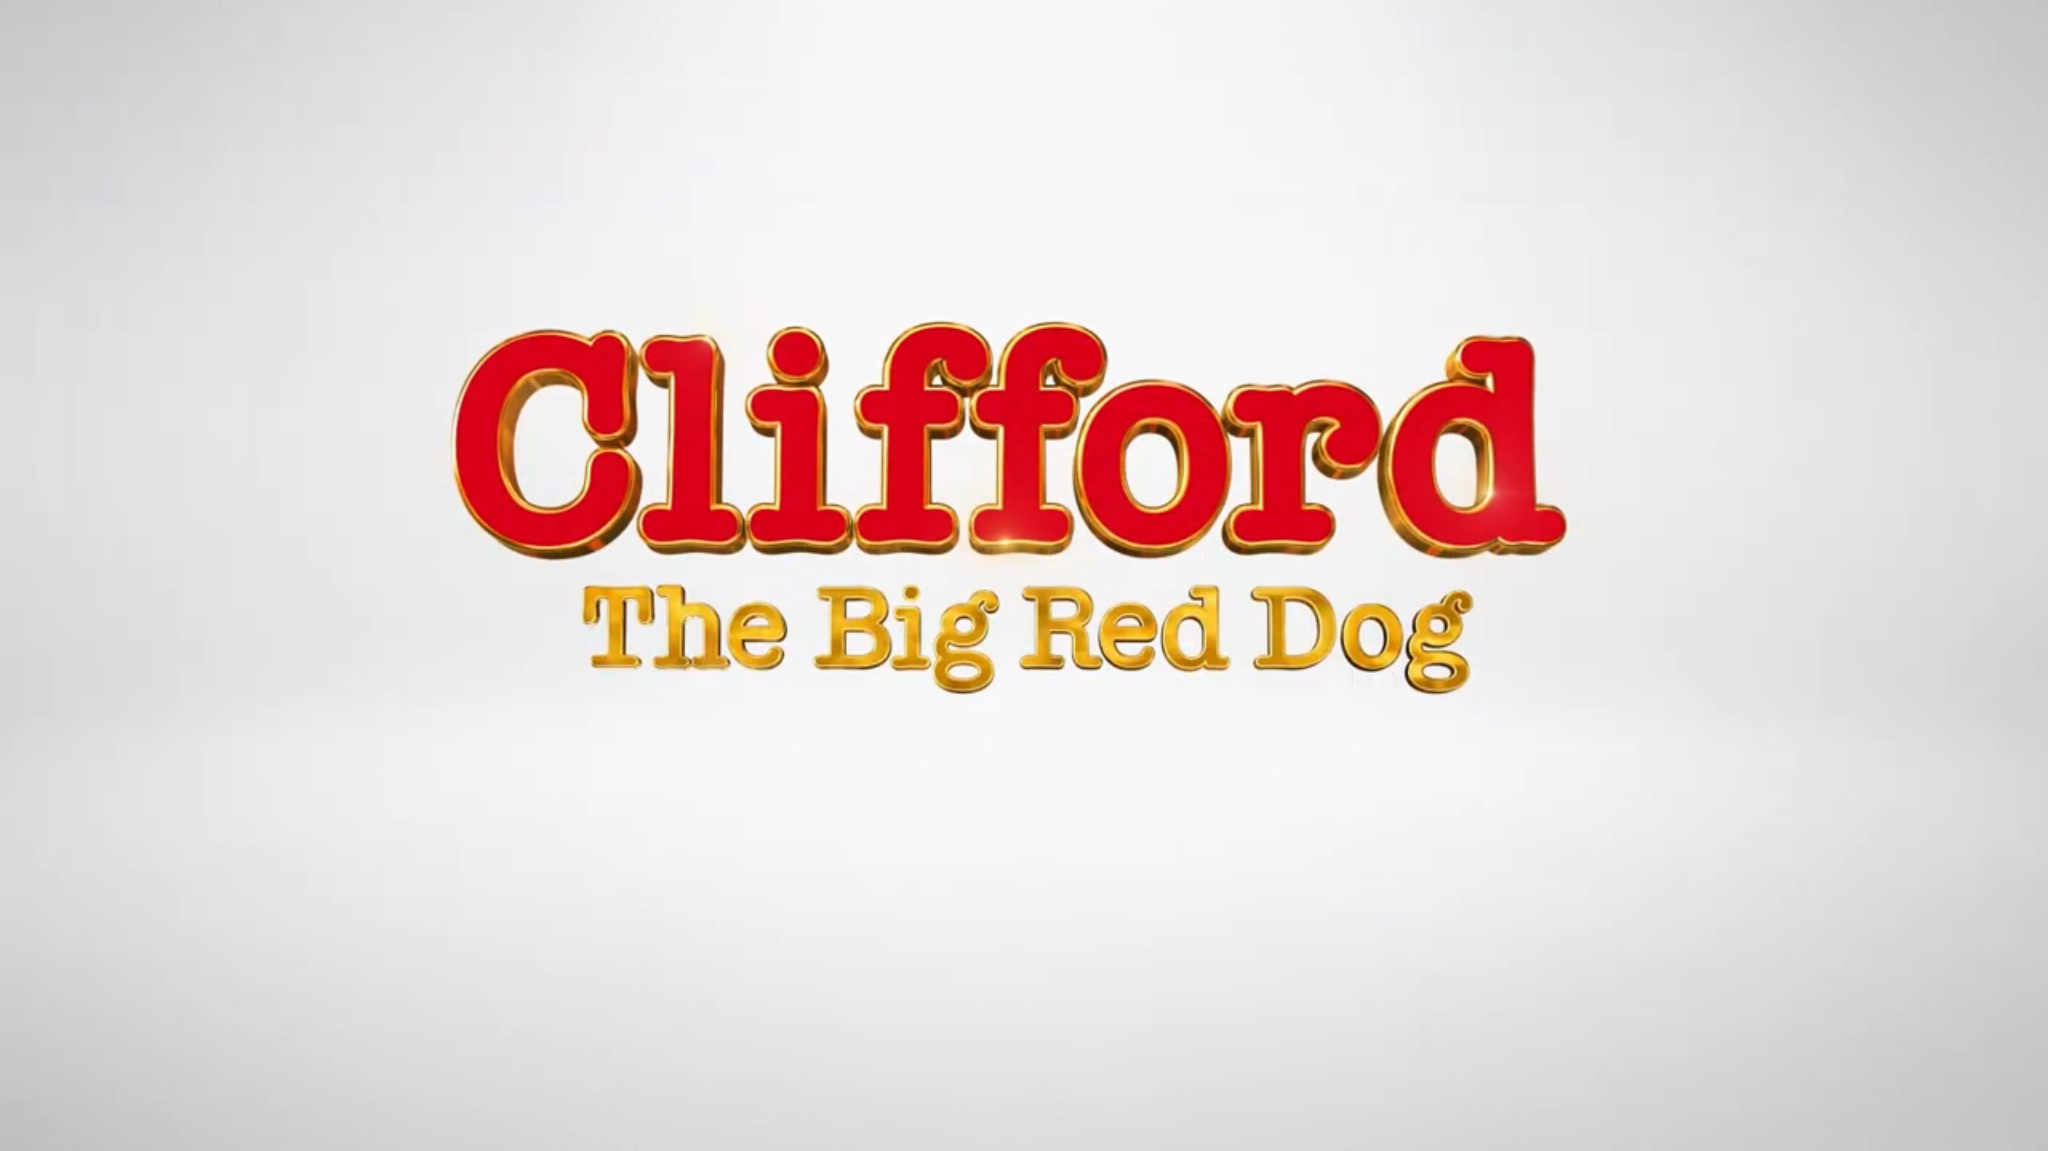 Clifford the Big Red Dog (film)